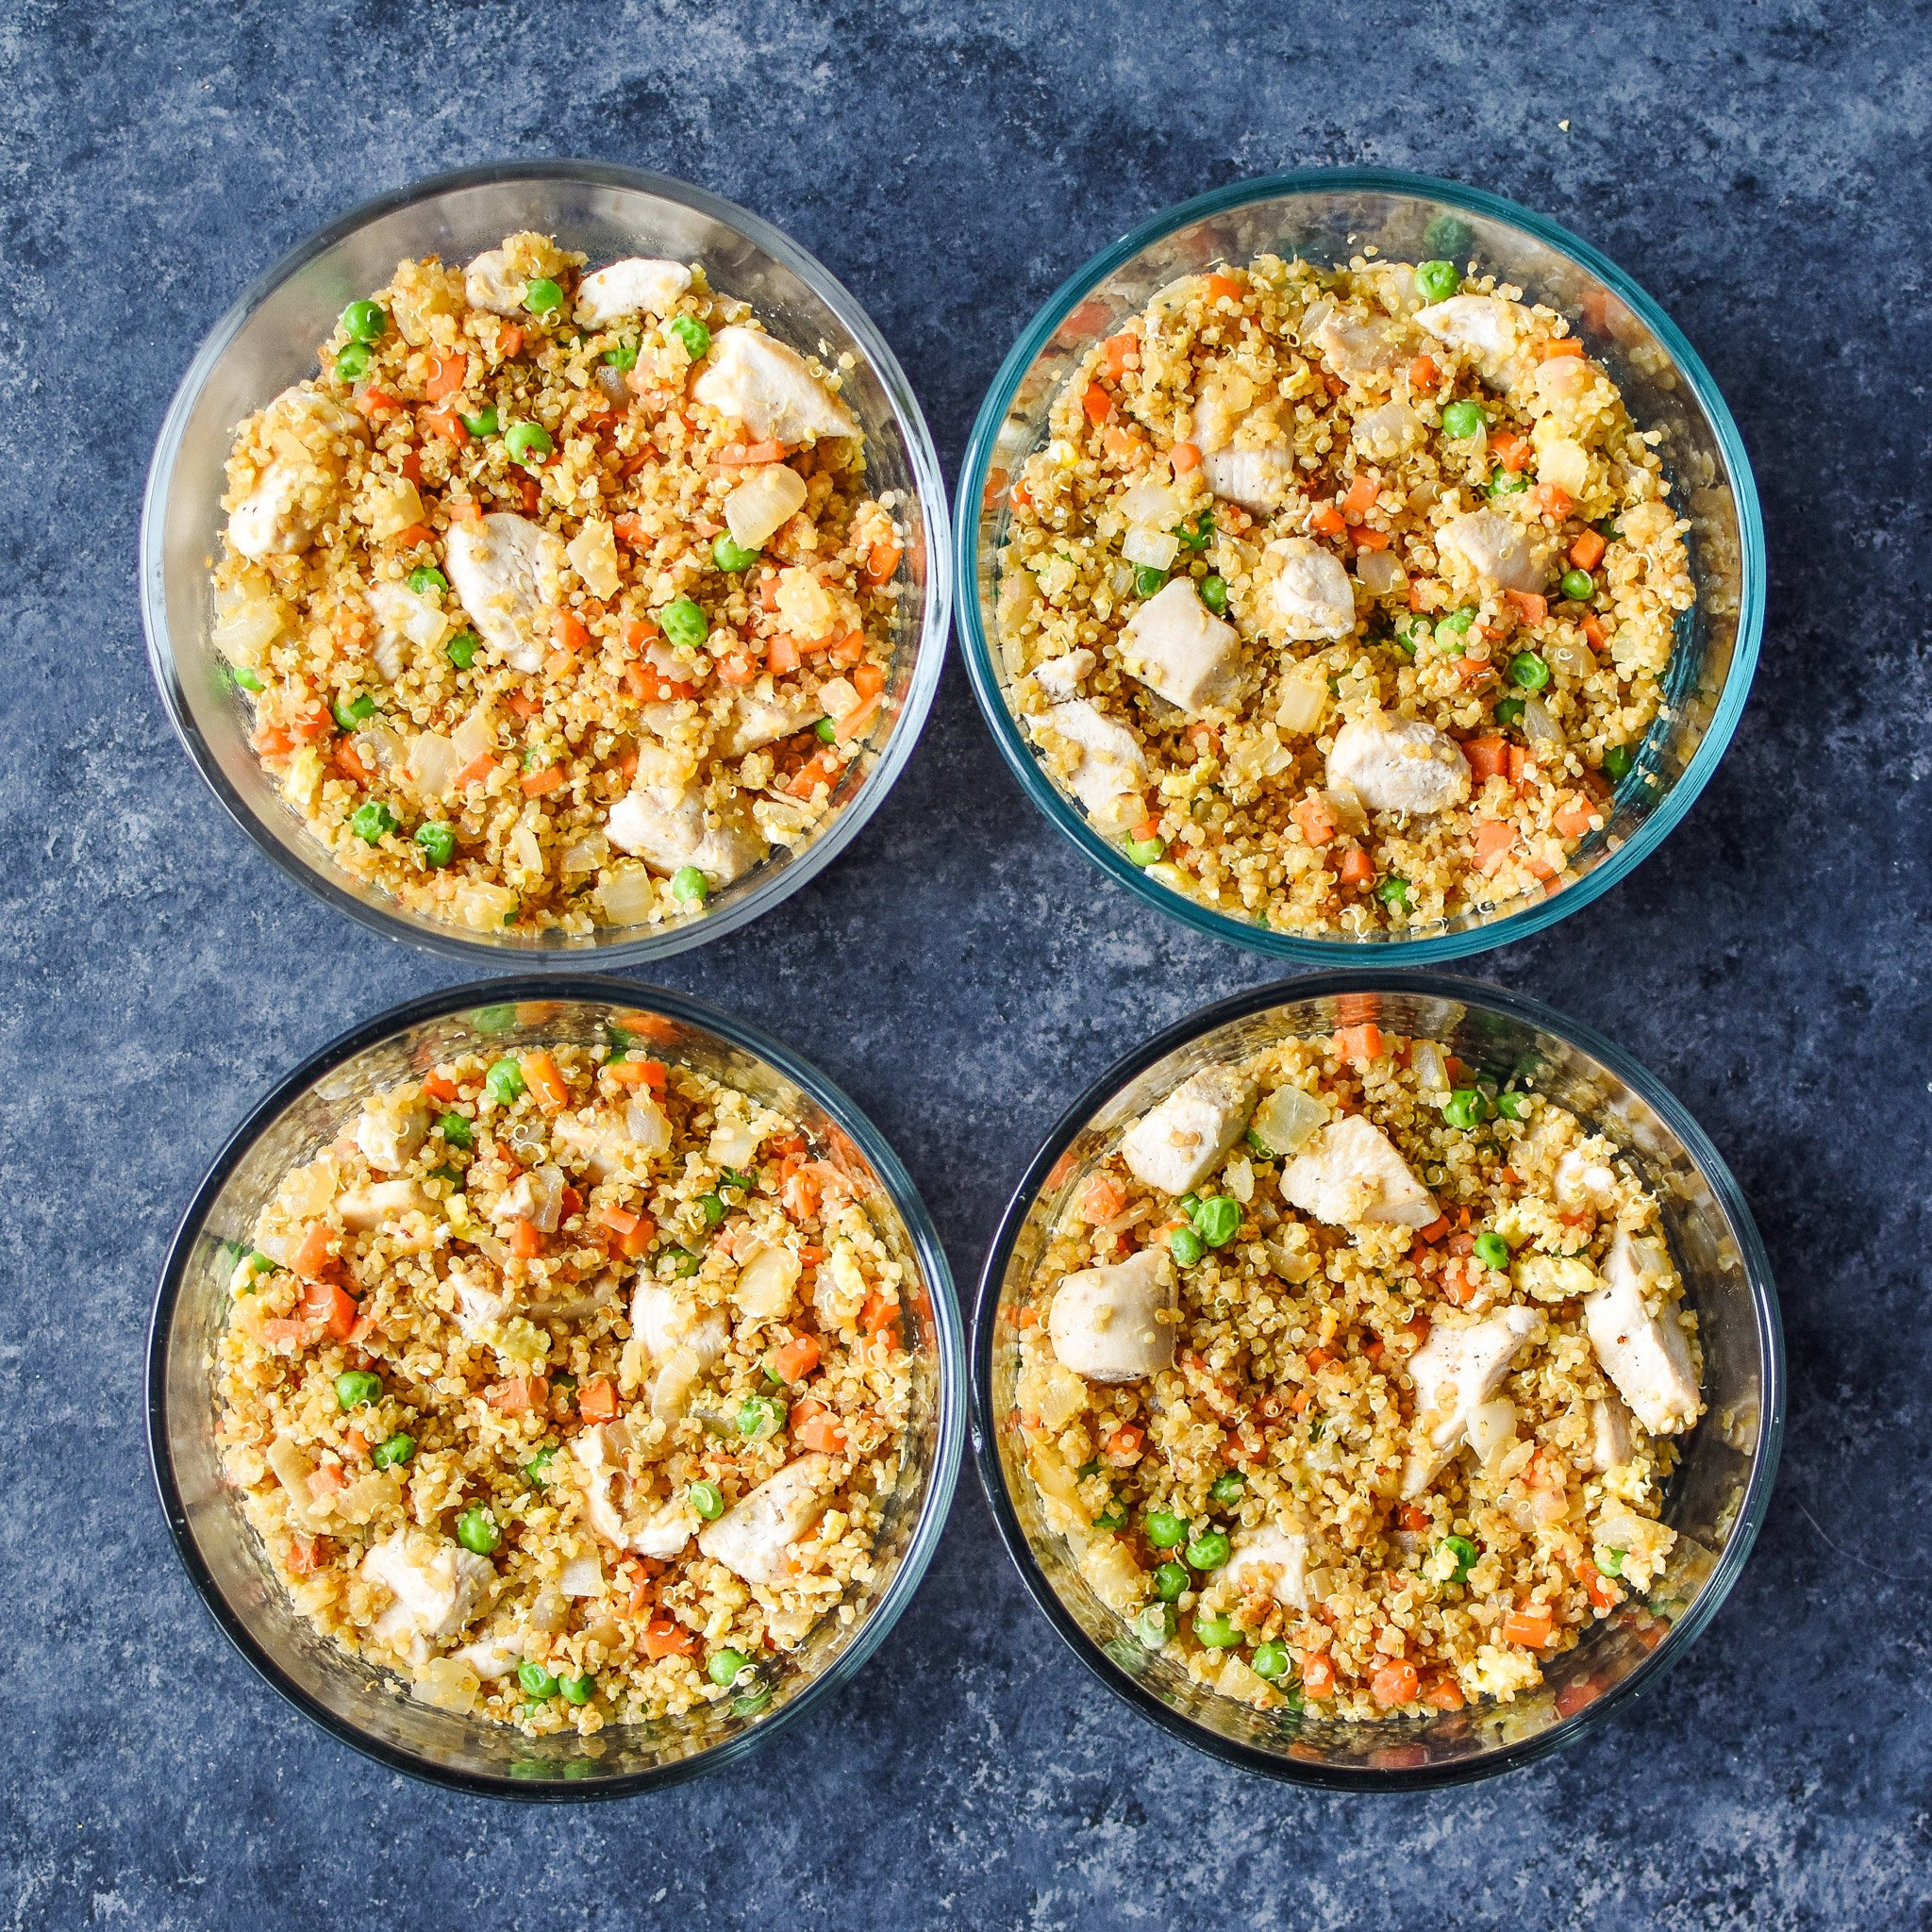 Chicken quinoa fried rice portioned into meal prep bowls.